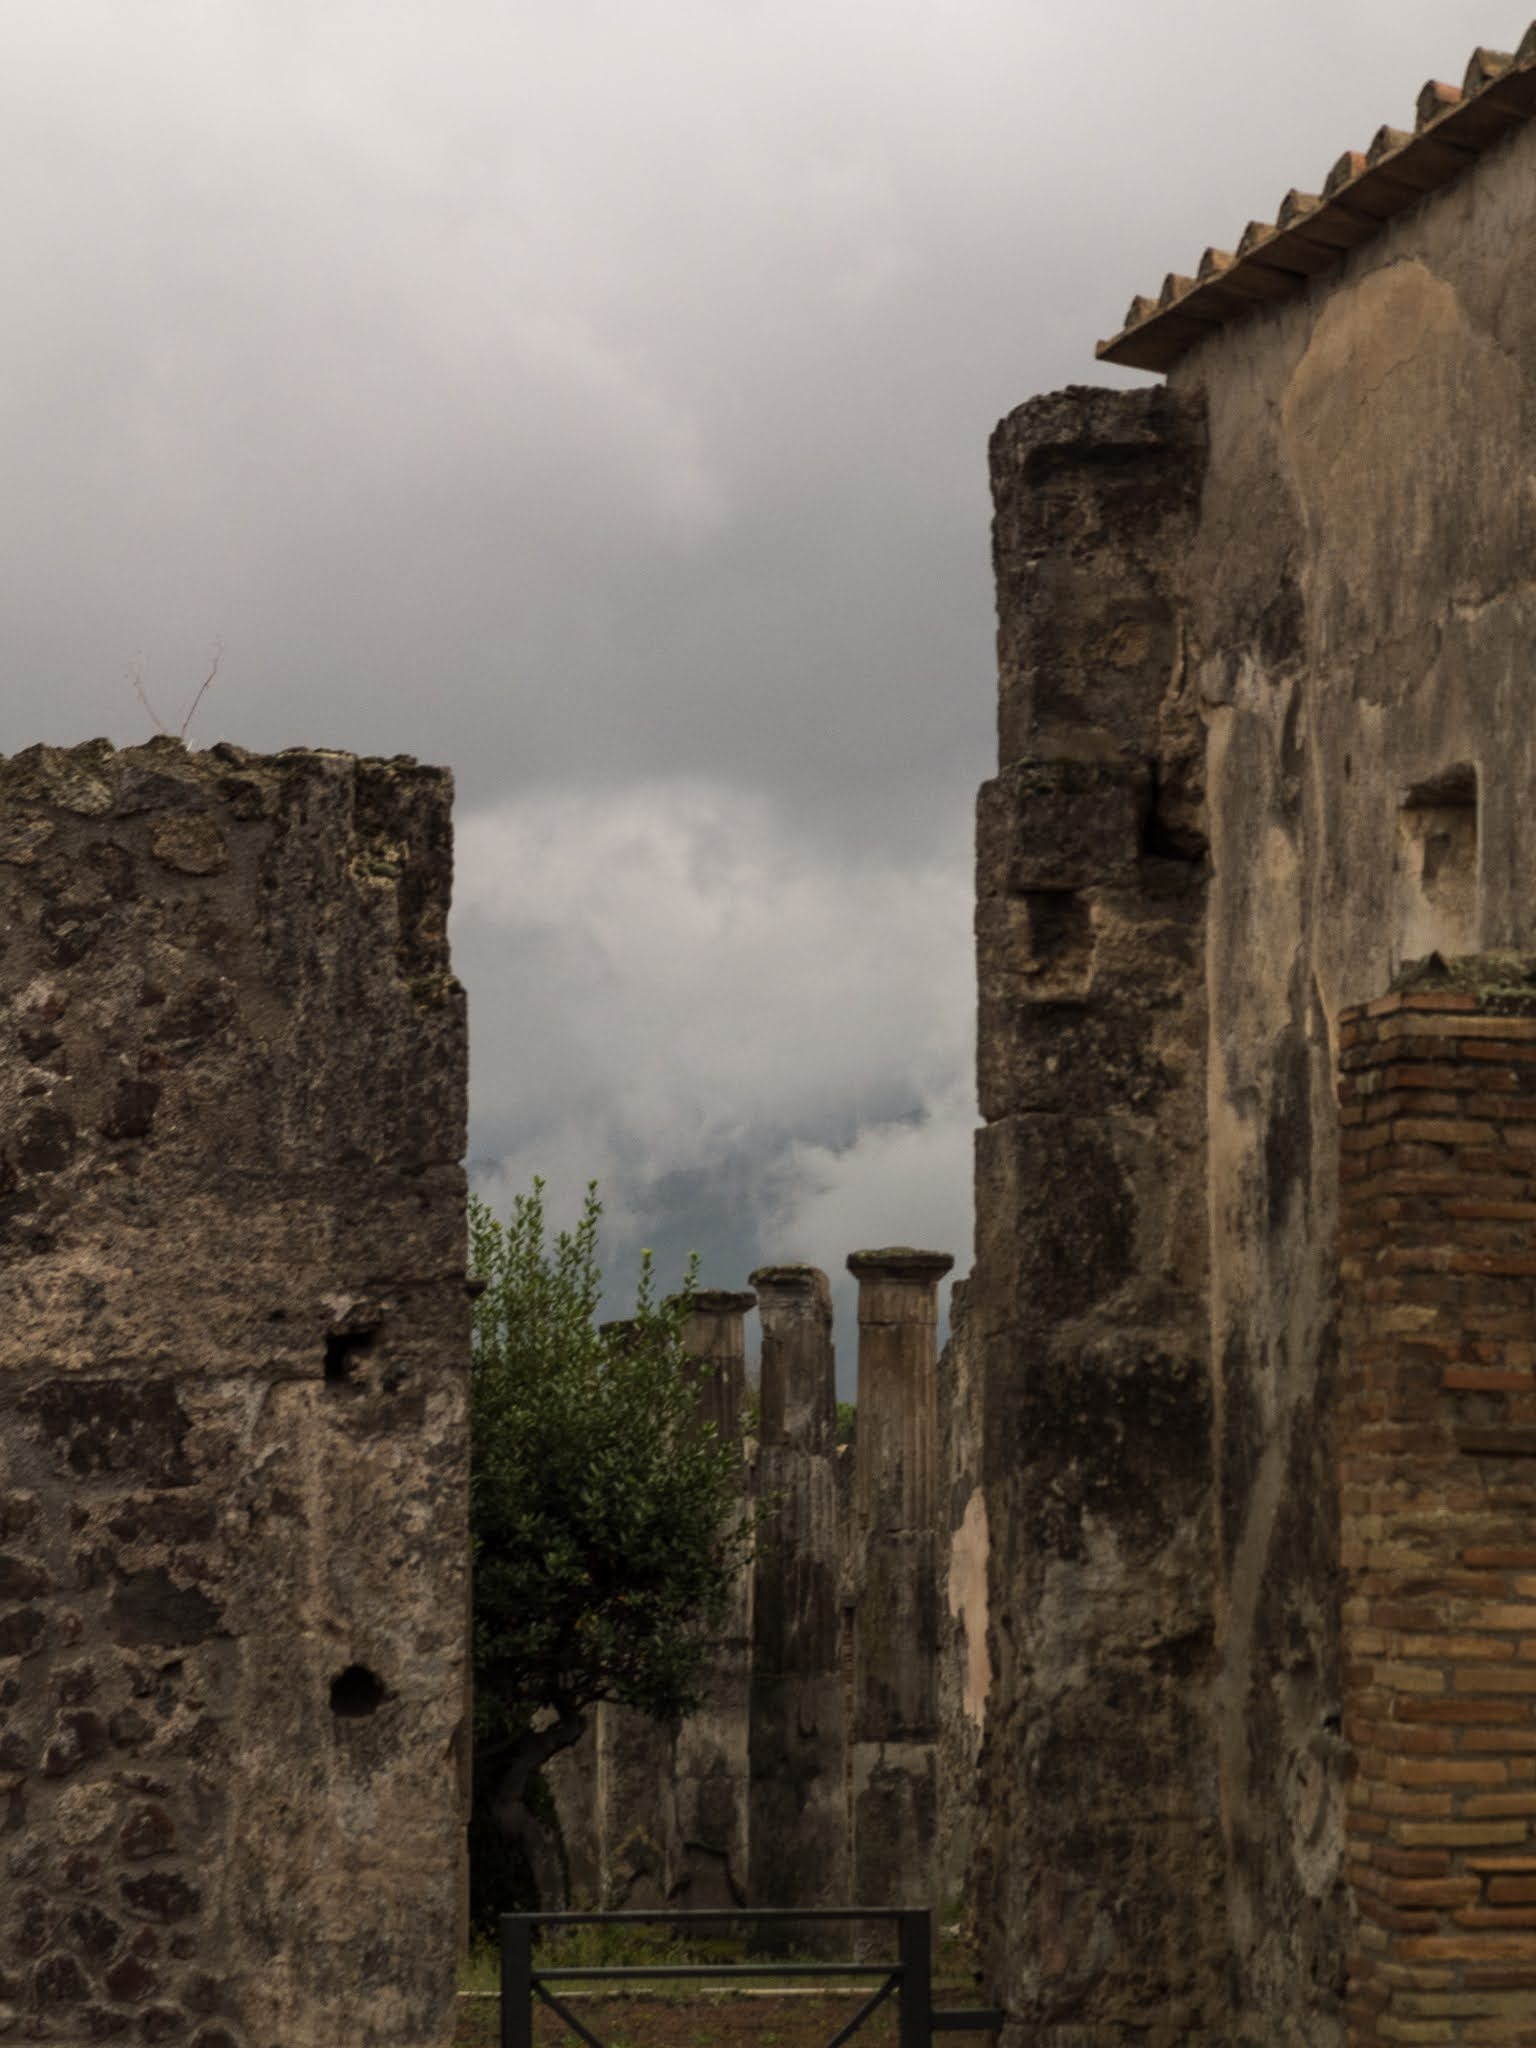 View of columns in the Archaeological site of Pompeii.